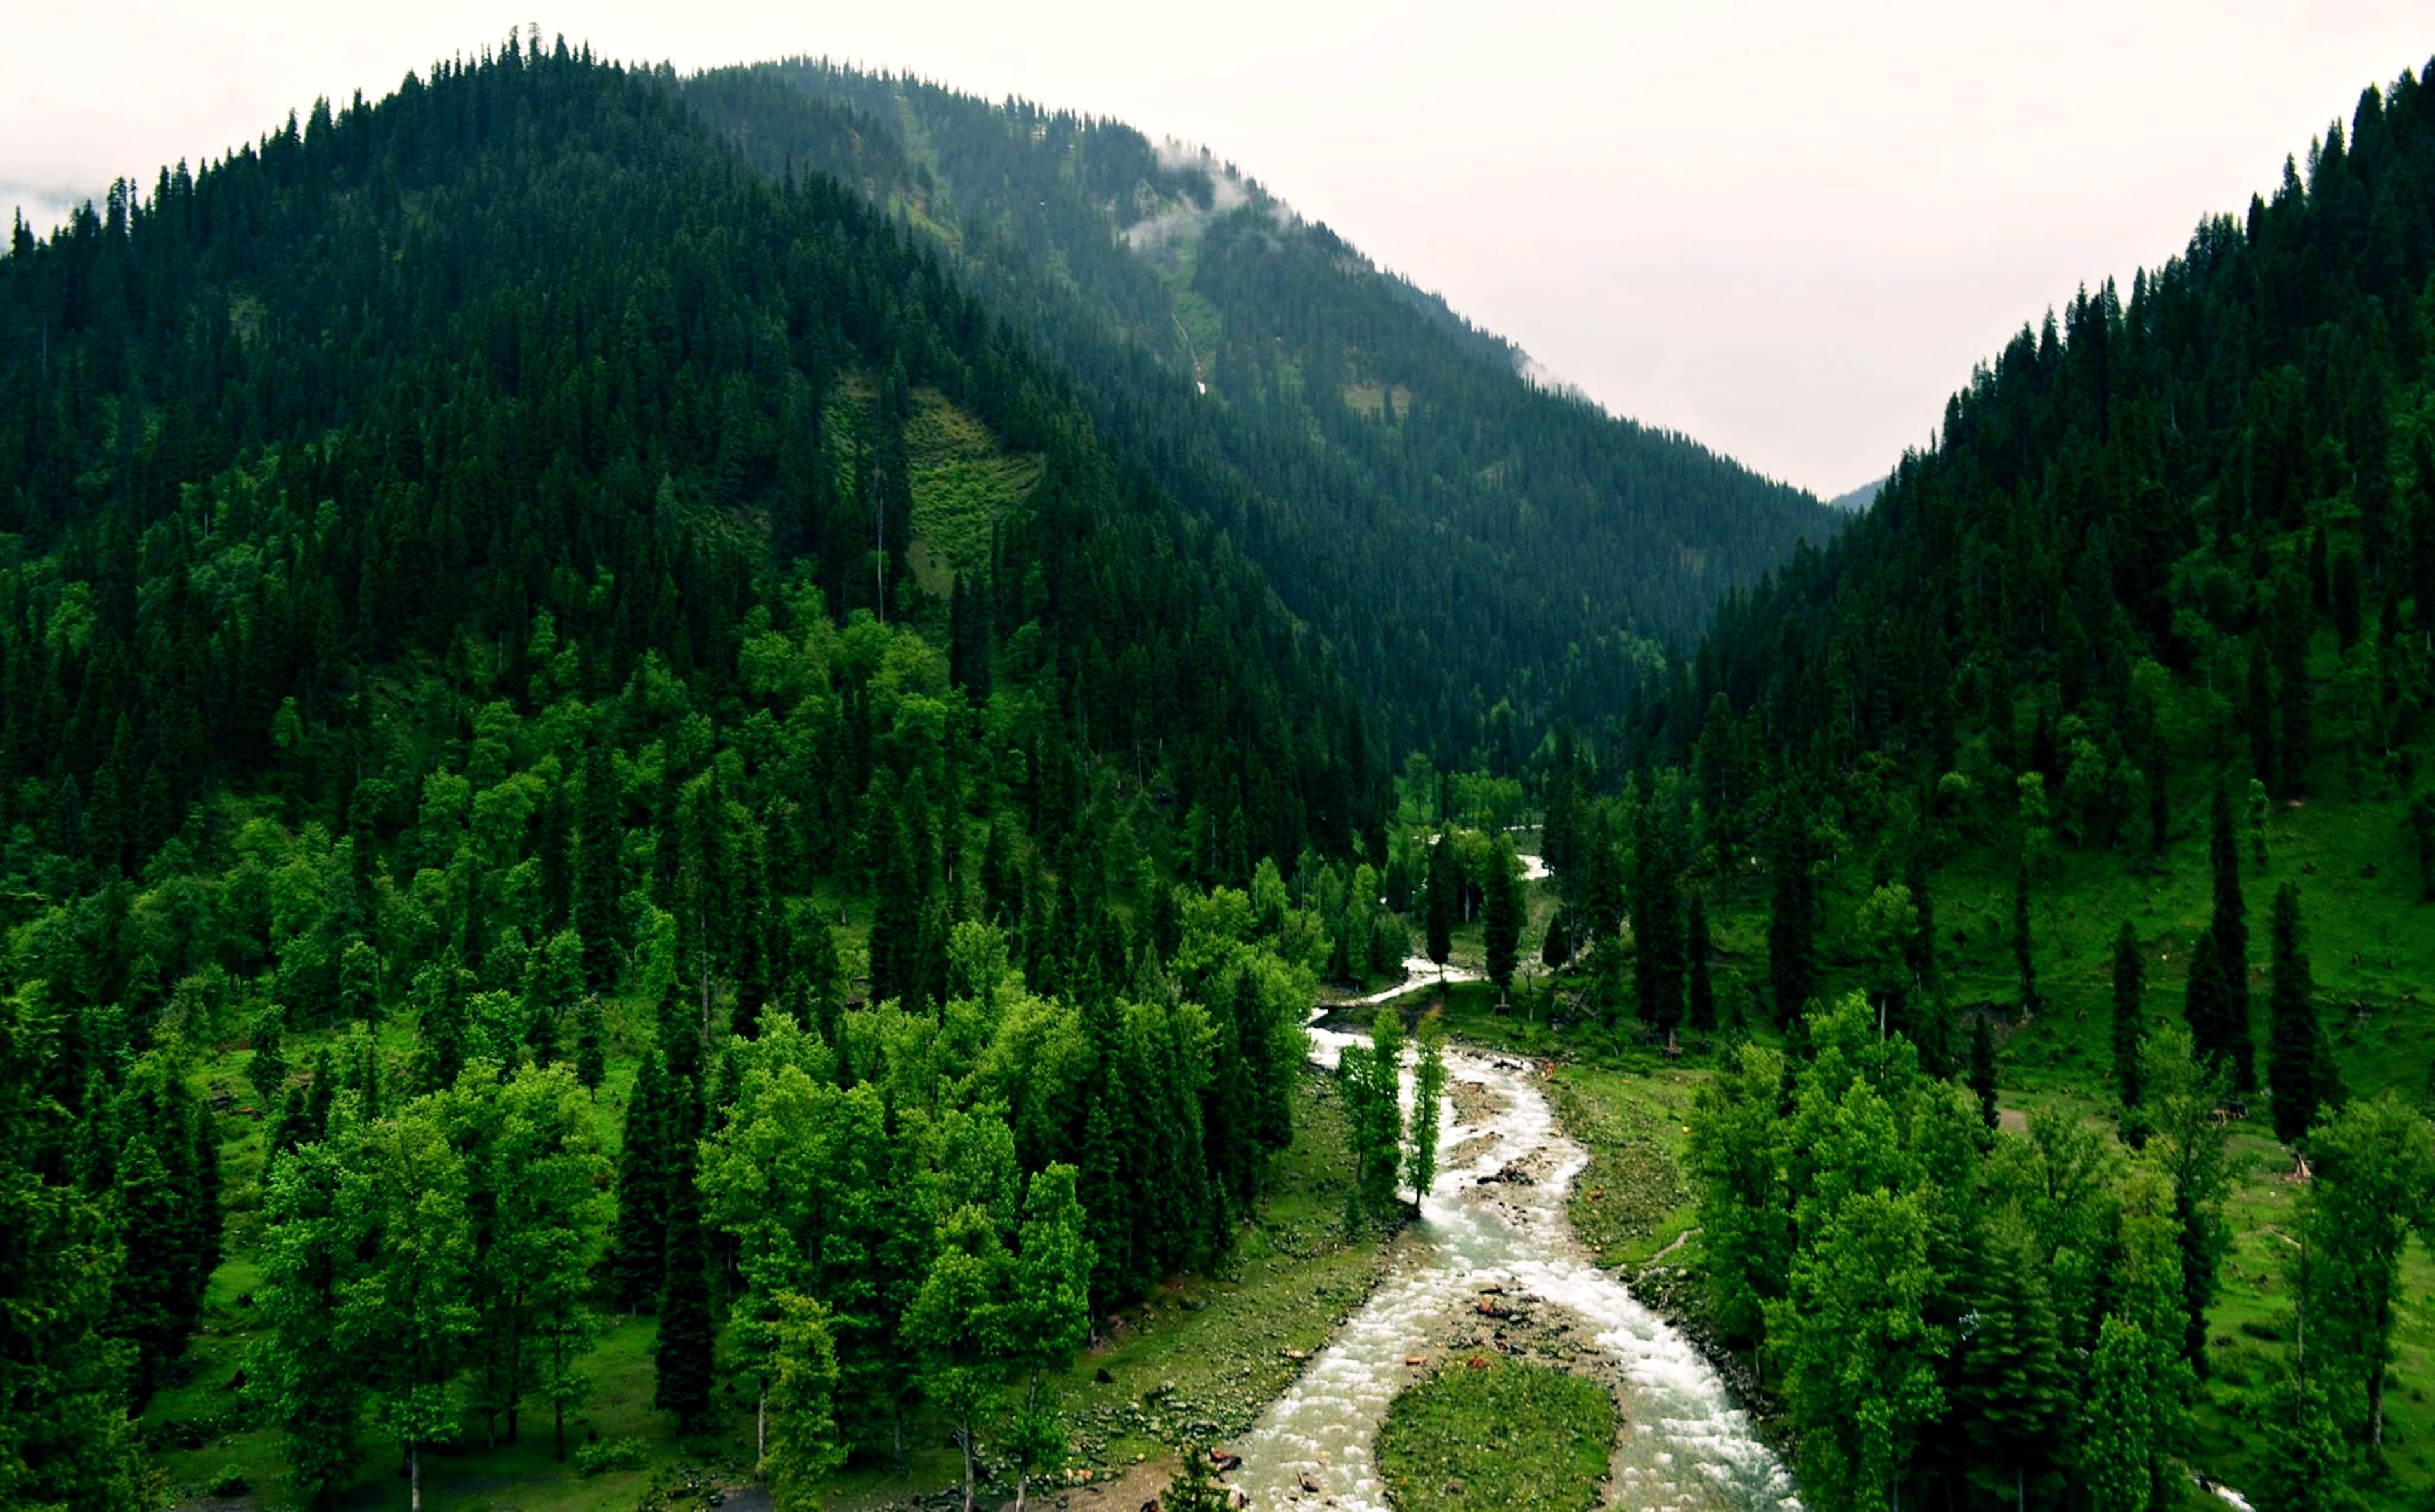 Download Pakistan Wallpapers With Complete Pakistani Culture And Pakistan Wallpaper Azad Kashmir Pakistan